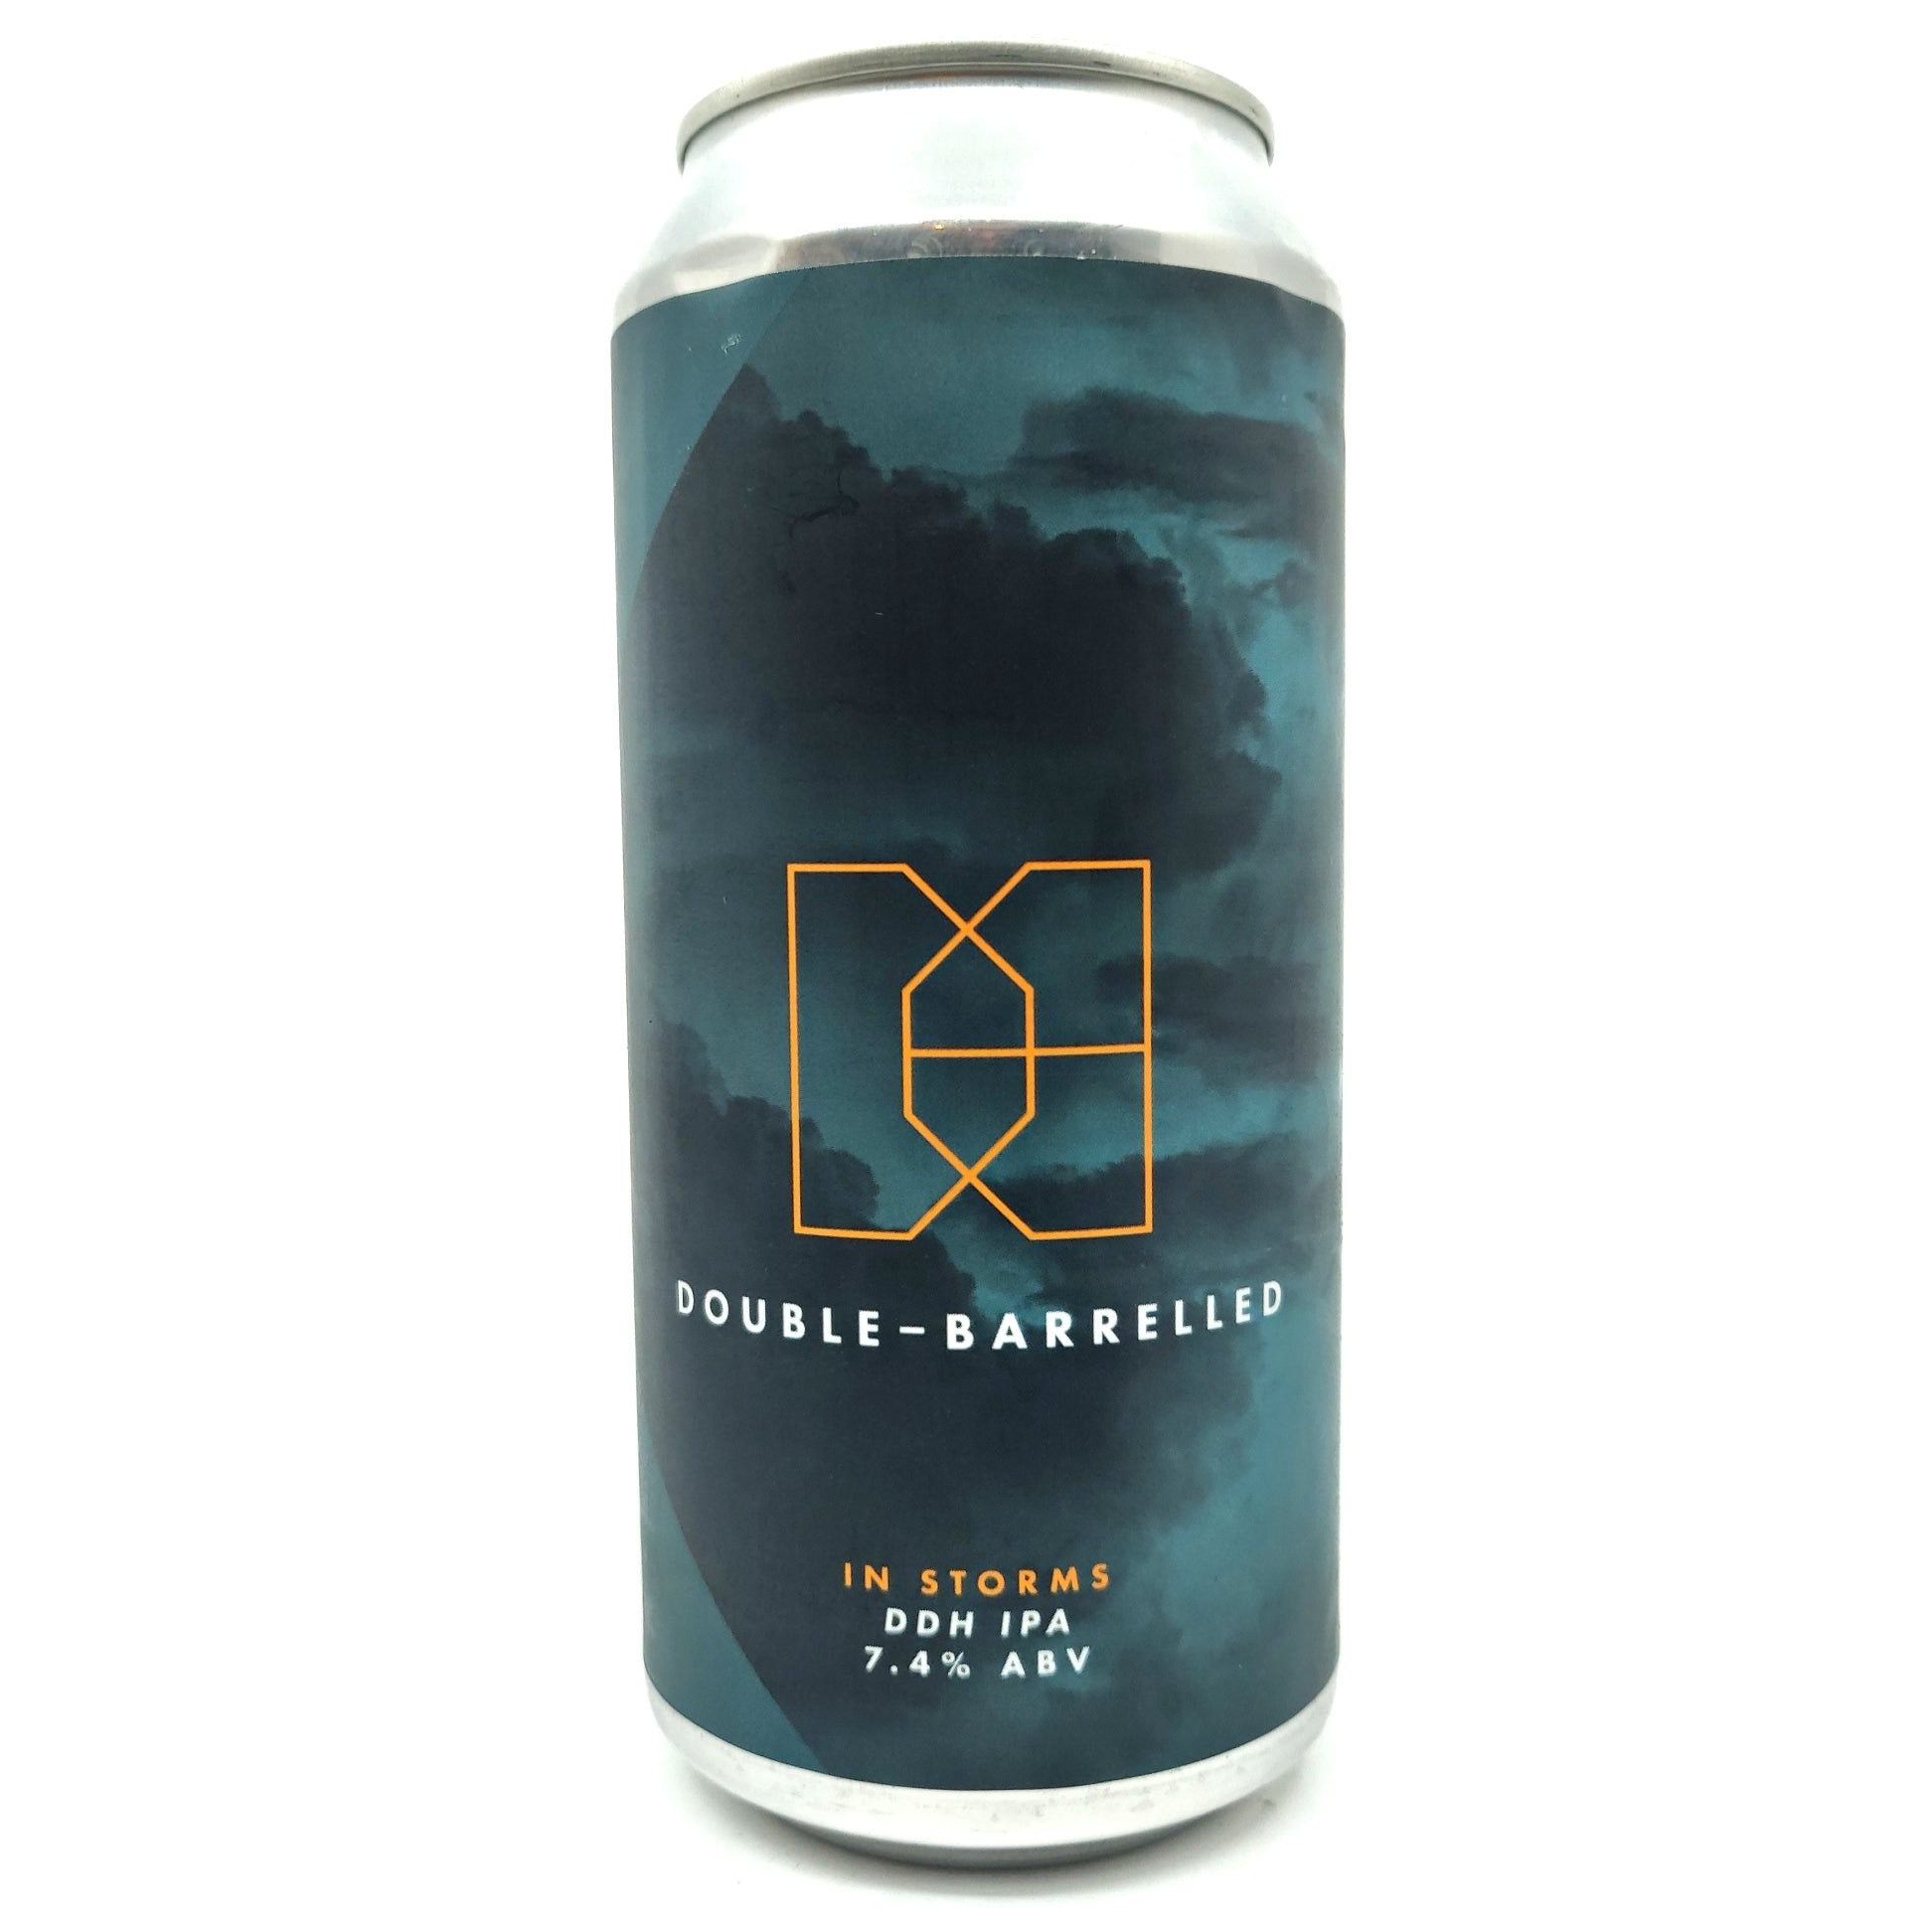 Double Barrelled In Storms IPA 7.4% (440ml can)-Hop Burns & Black